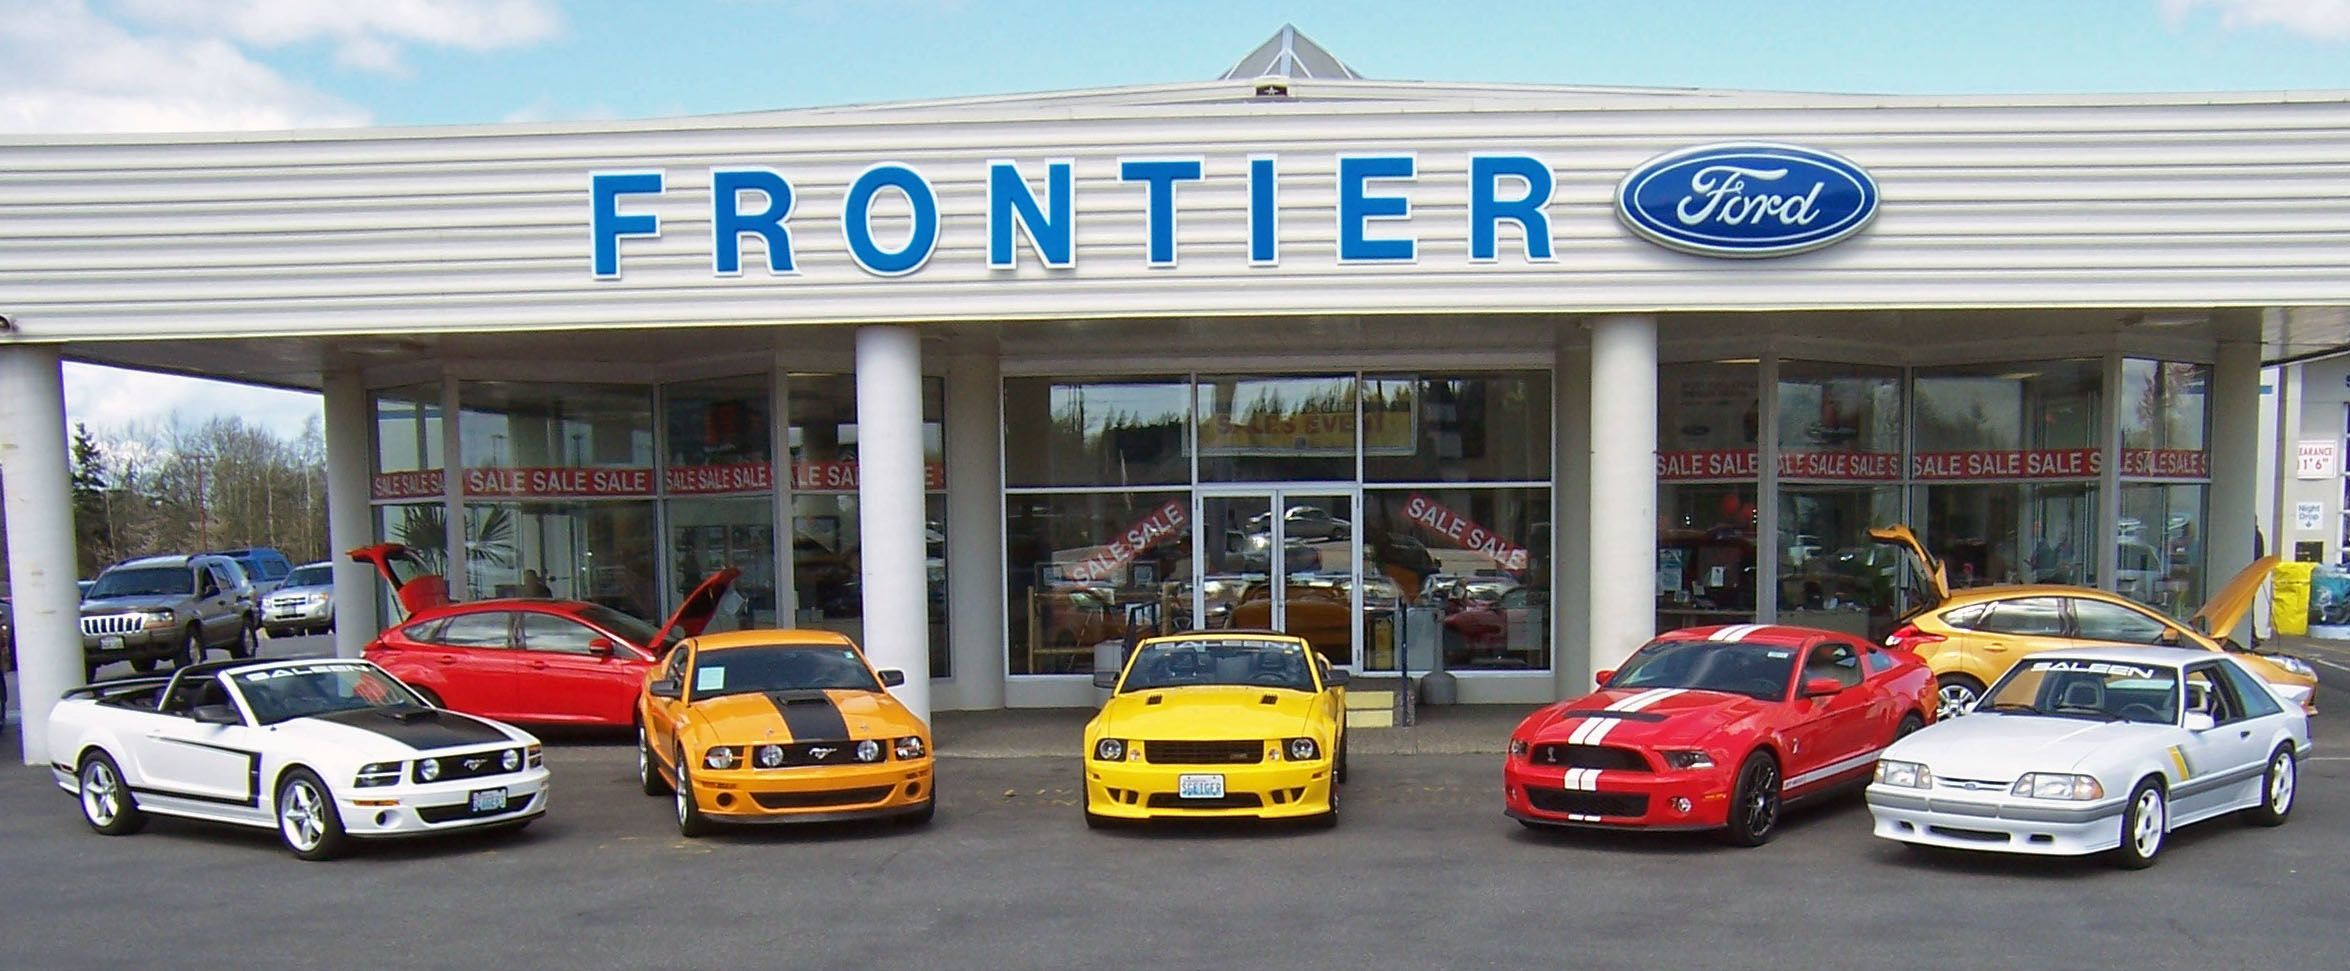 frontier ford usa dealership